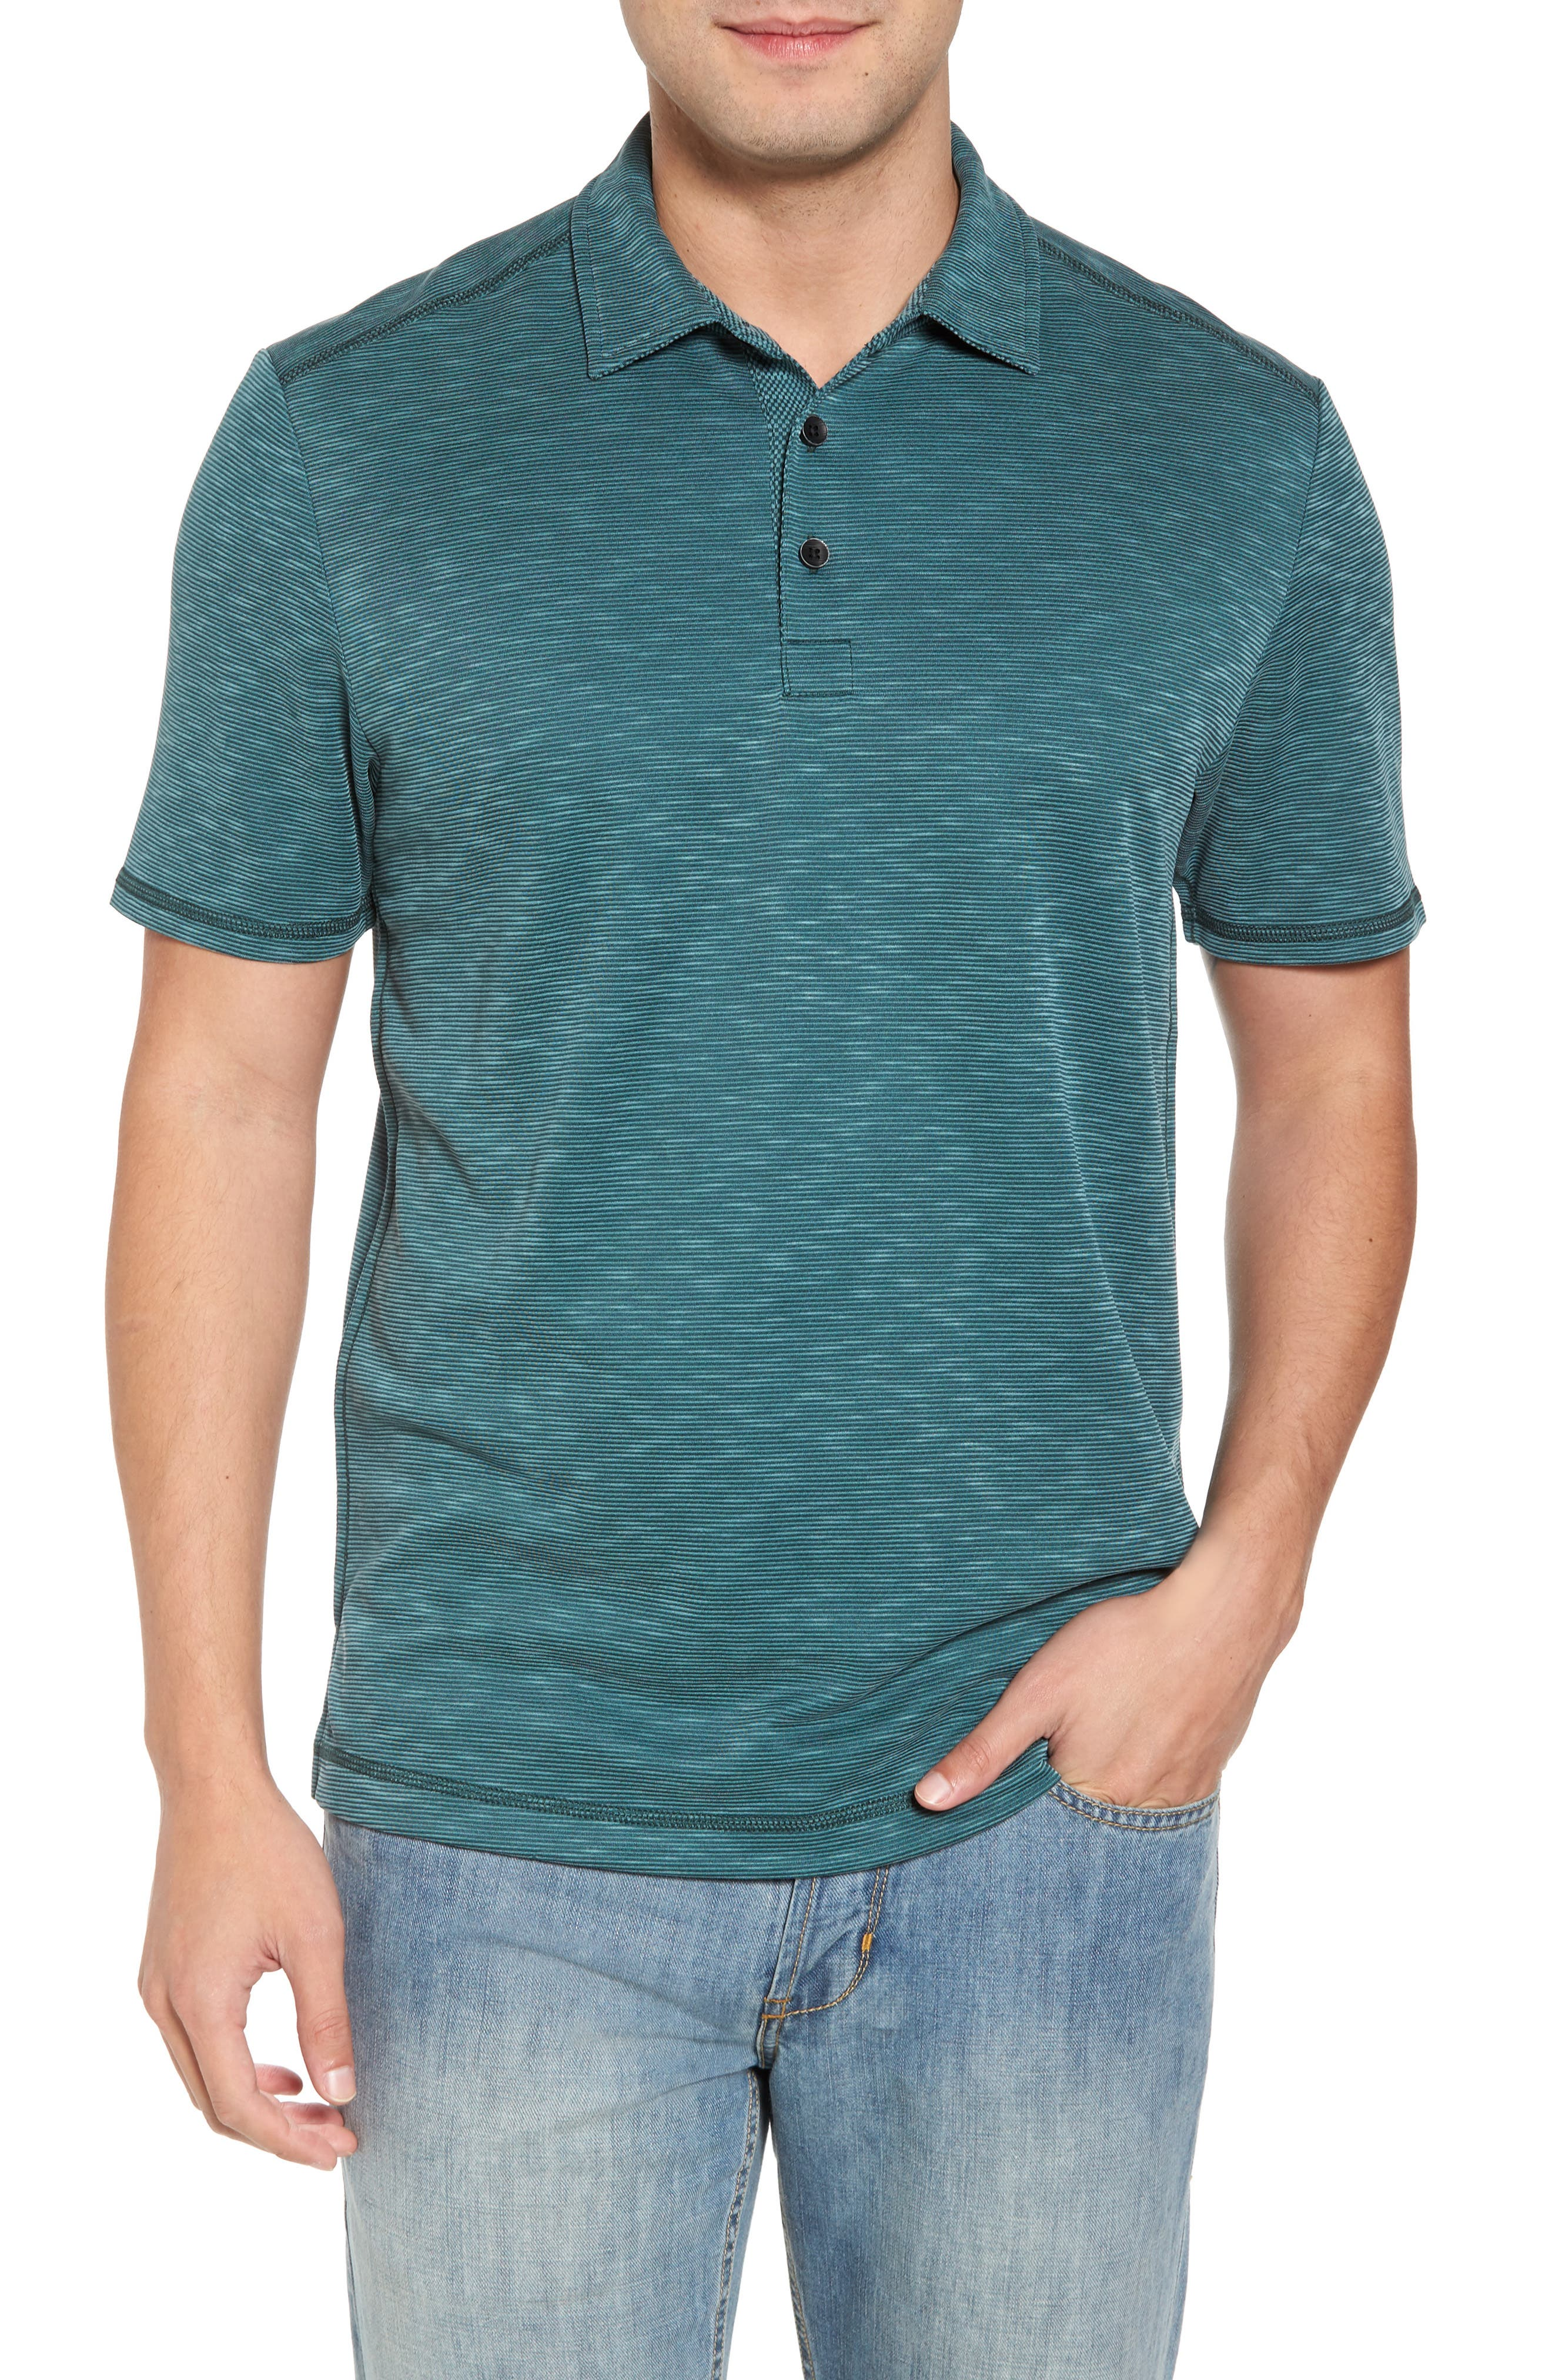 Alternate Image 1 Selected - Tommy Bahama New Double Tempo Spectator Jersey Polo